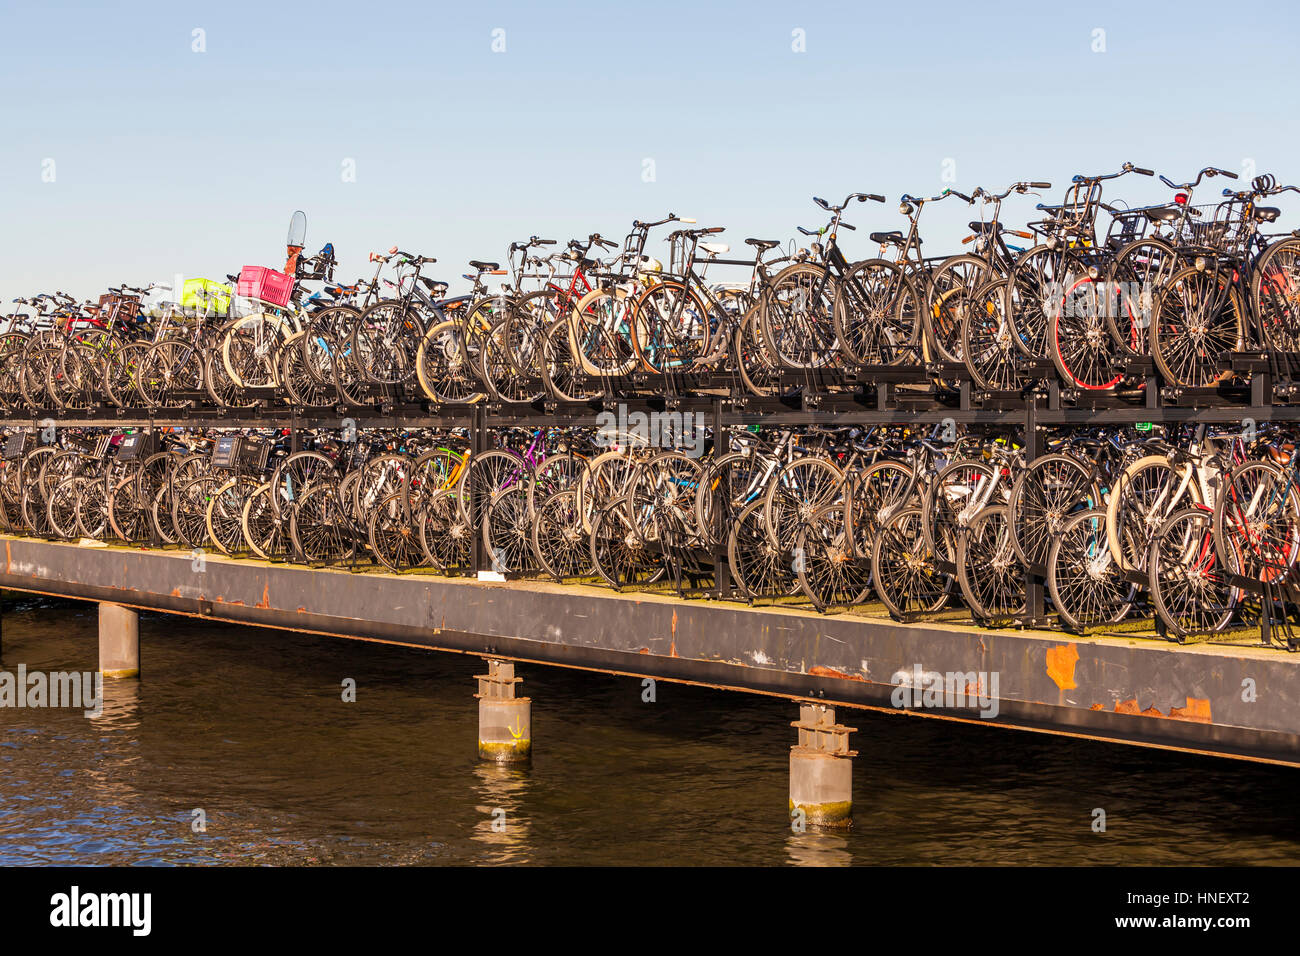 Parking Garage Bike Rack Bicycle Parking Lot On The River Het Ij Many Bicycles In The Bike